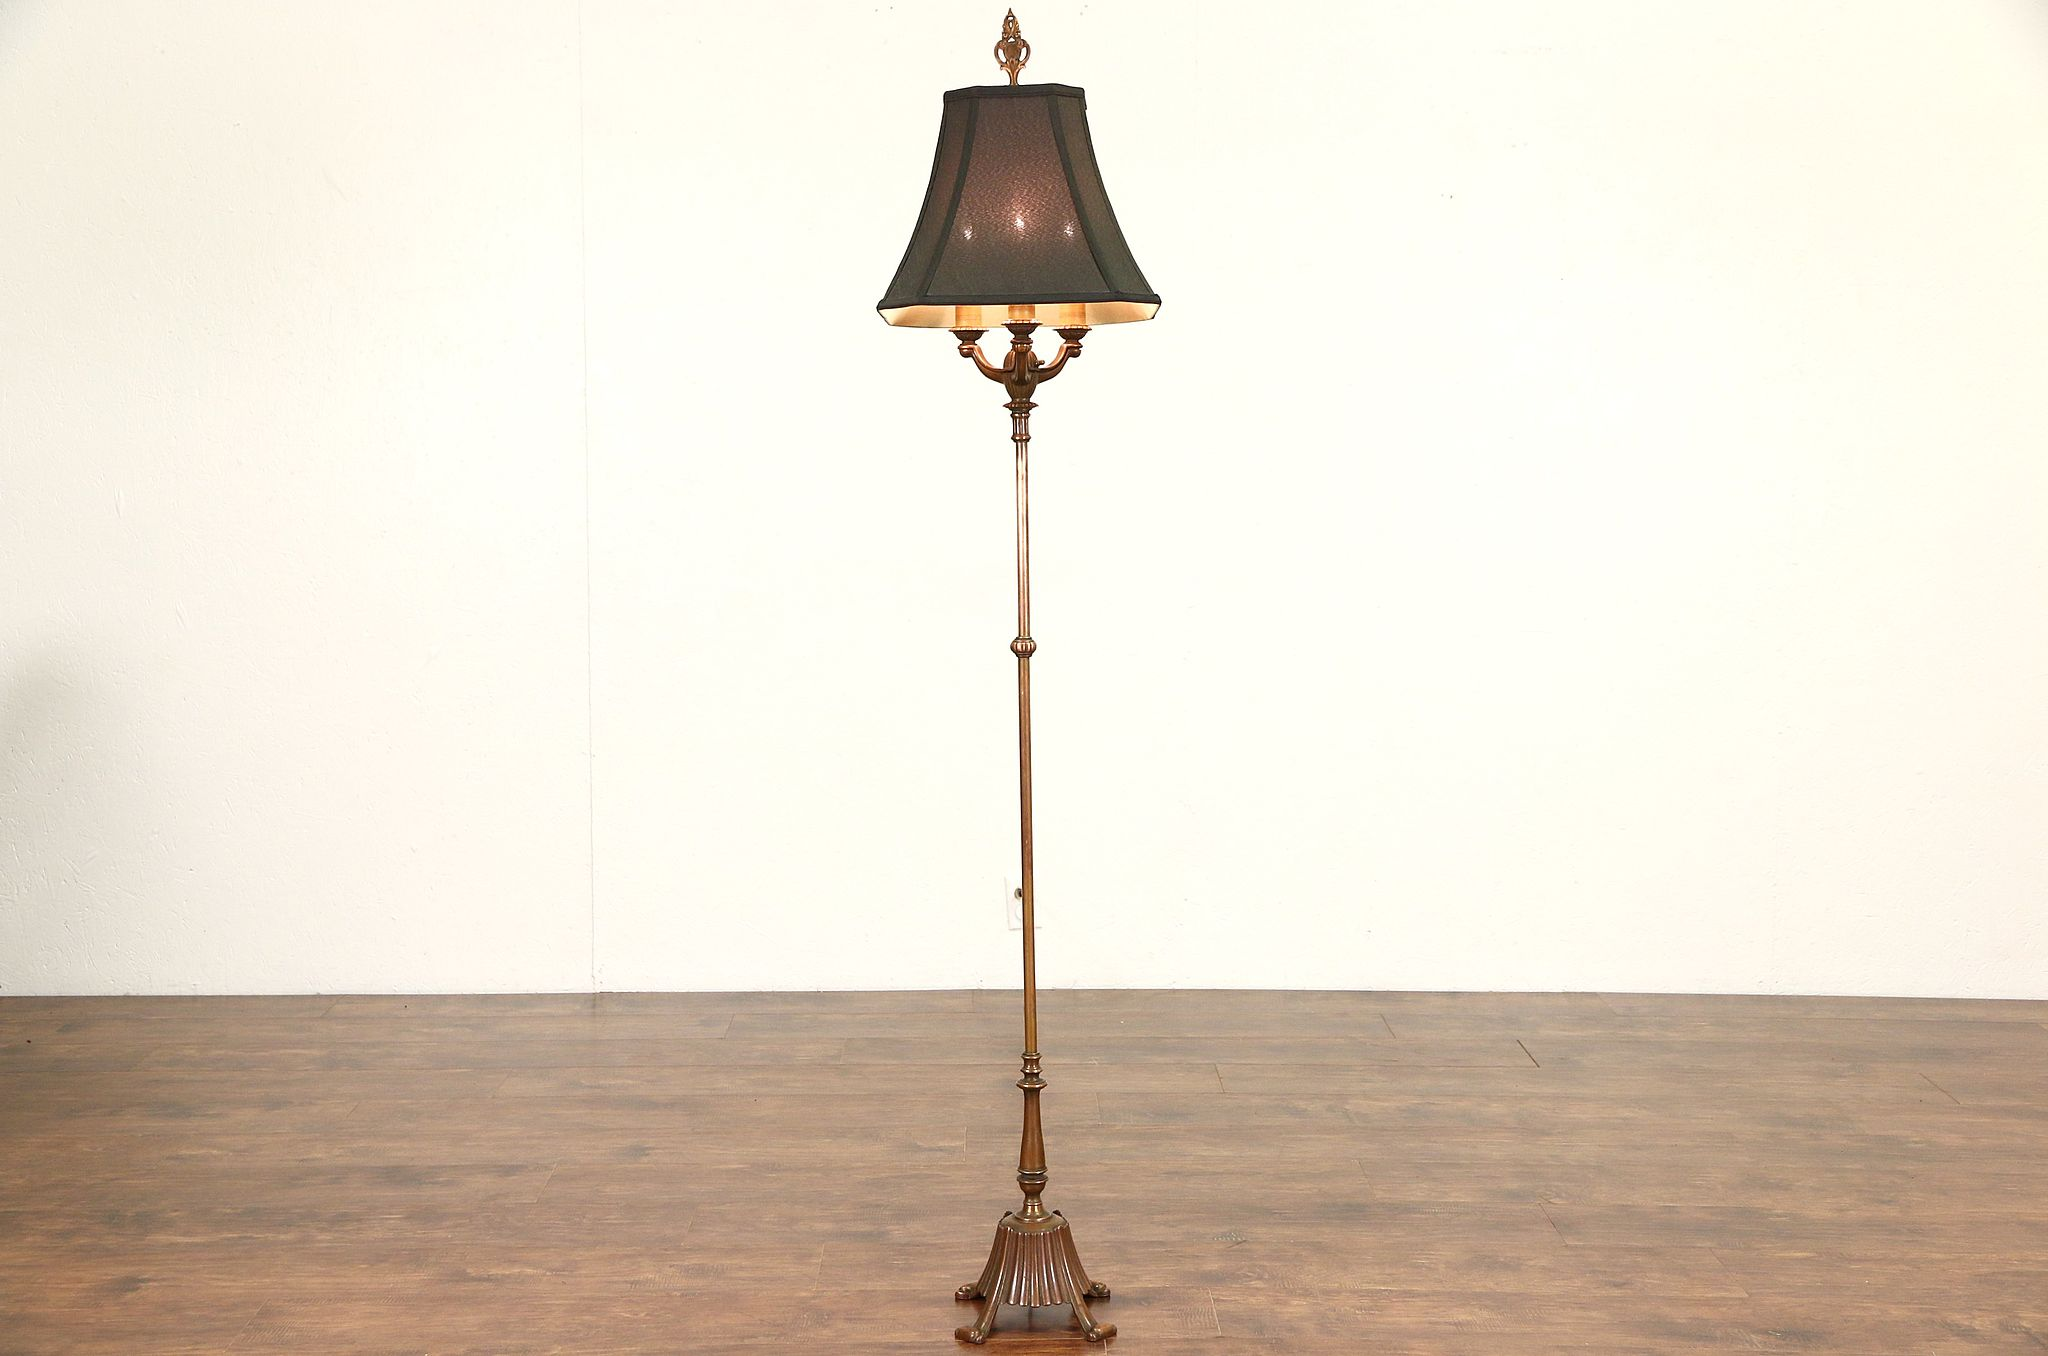 Sold rembrandt 1920s antique burnished copper floor lamp new rembrandt 1920s antique burnished copper floor lamp new shade aloadofball Gallery